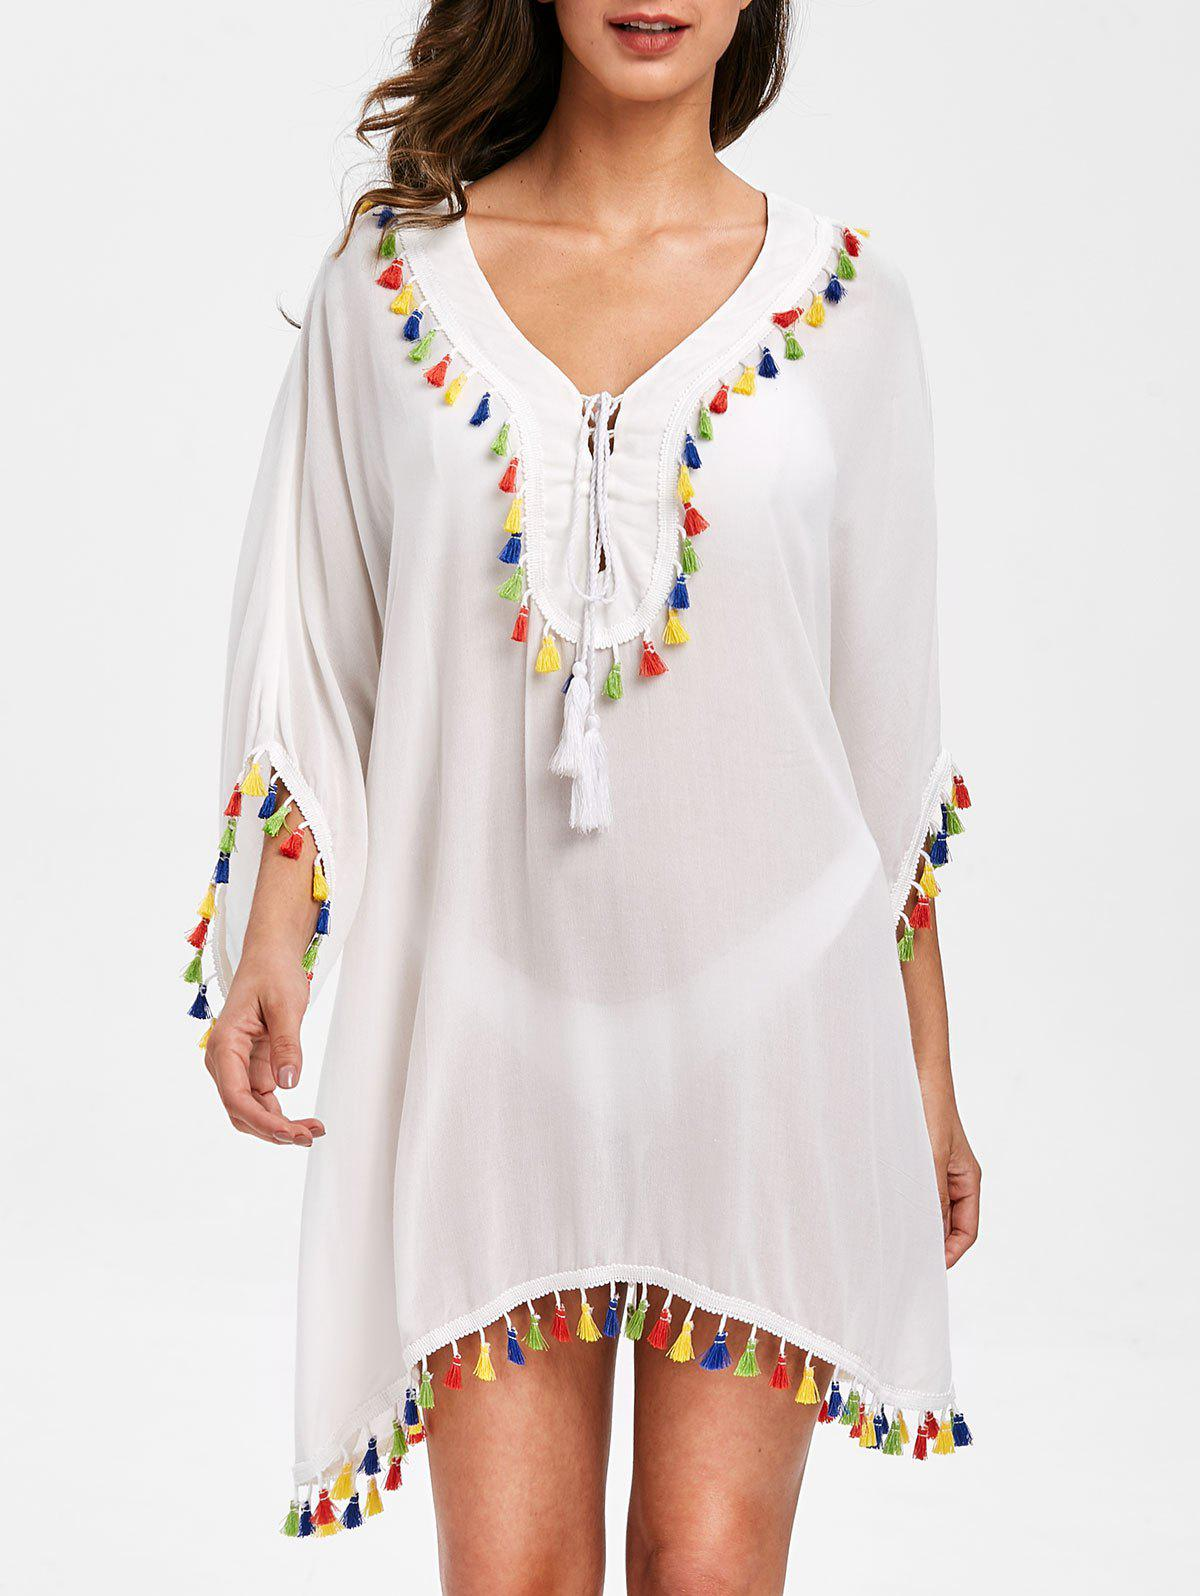 Batwing Sleeve Tassels Tunic Cover Up - 2xl